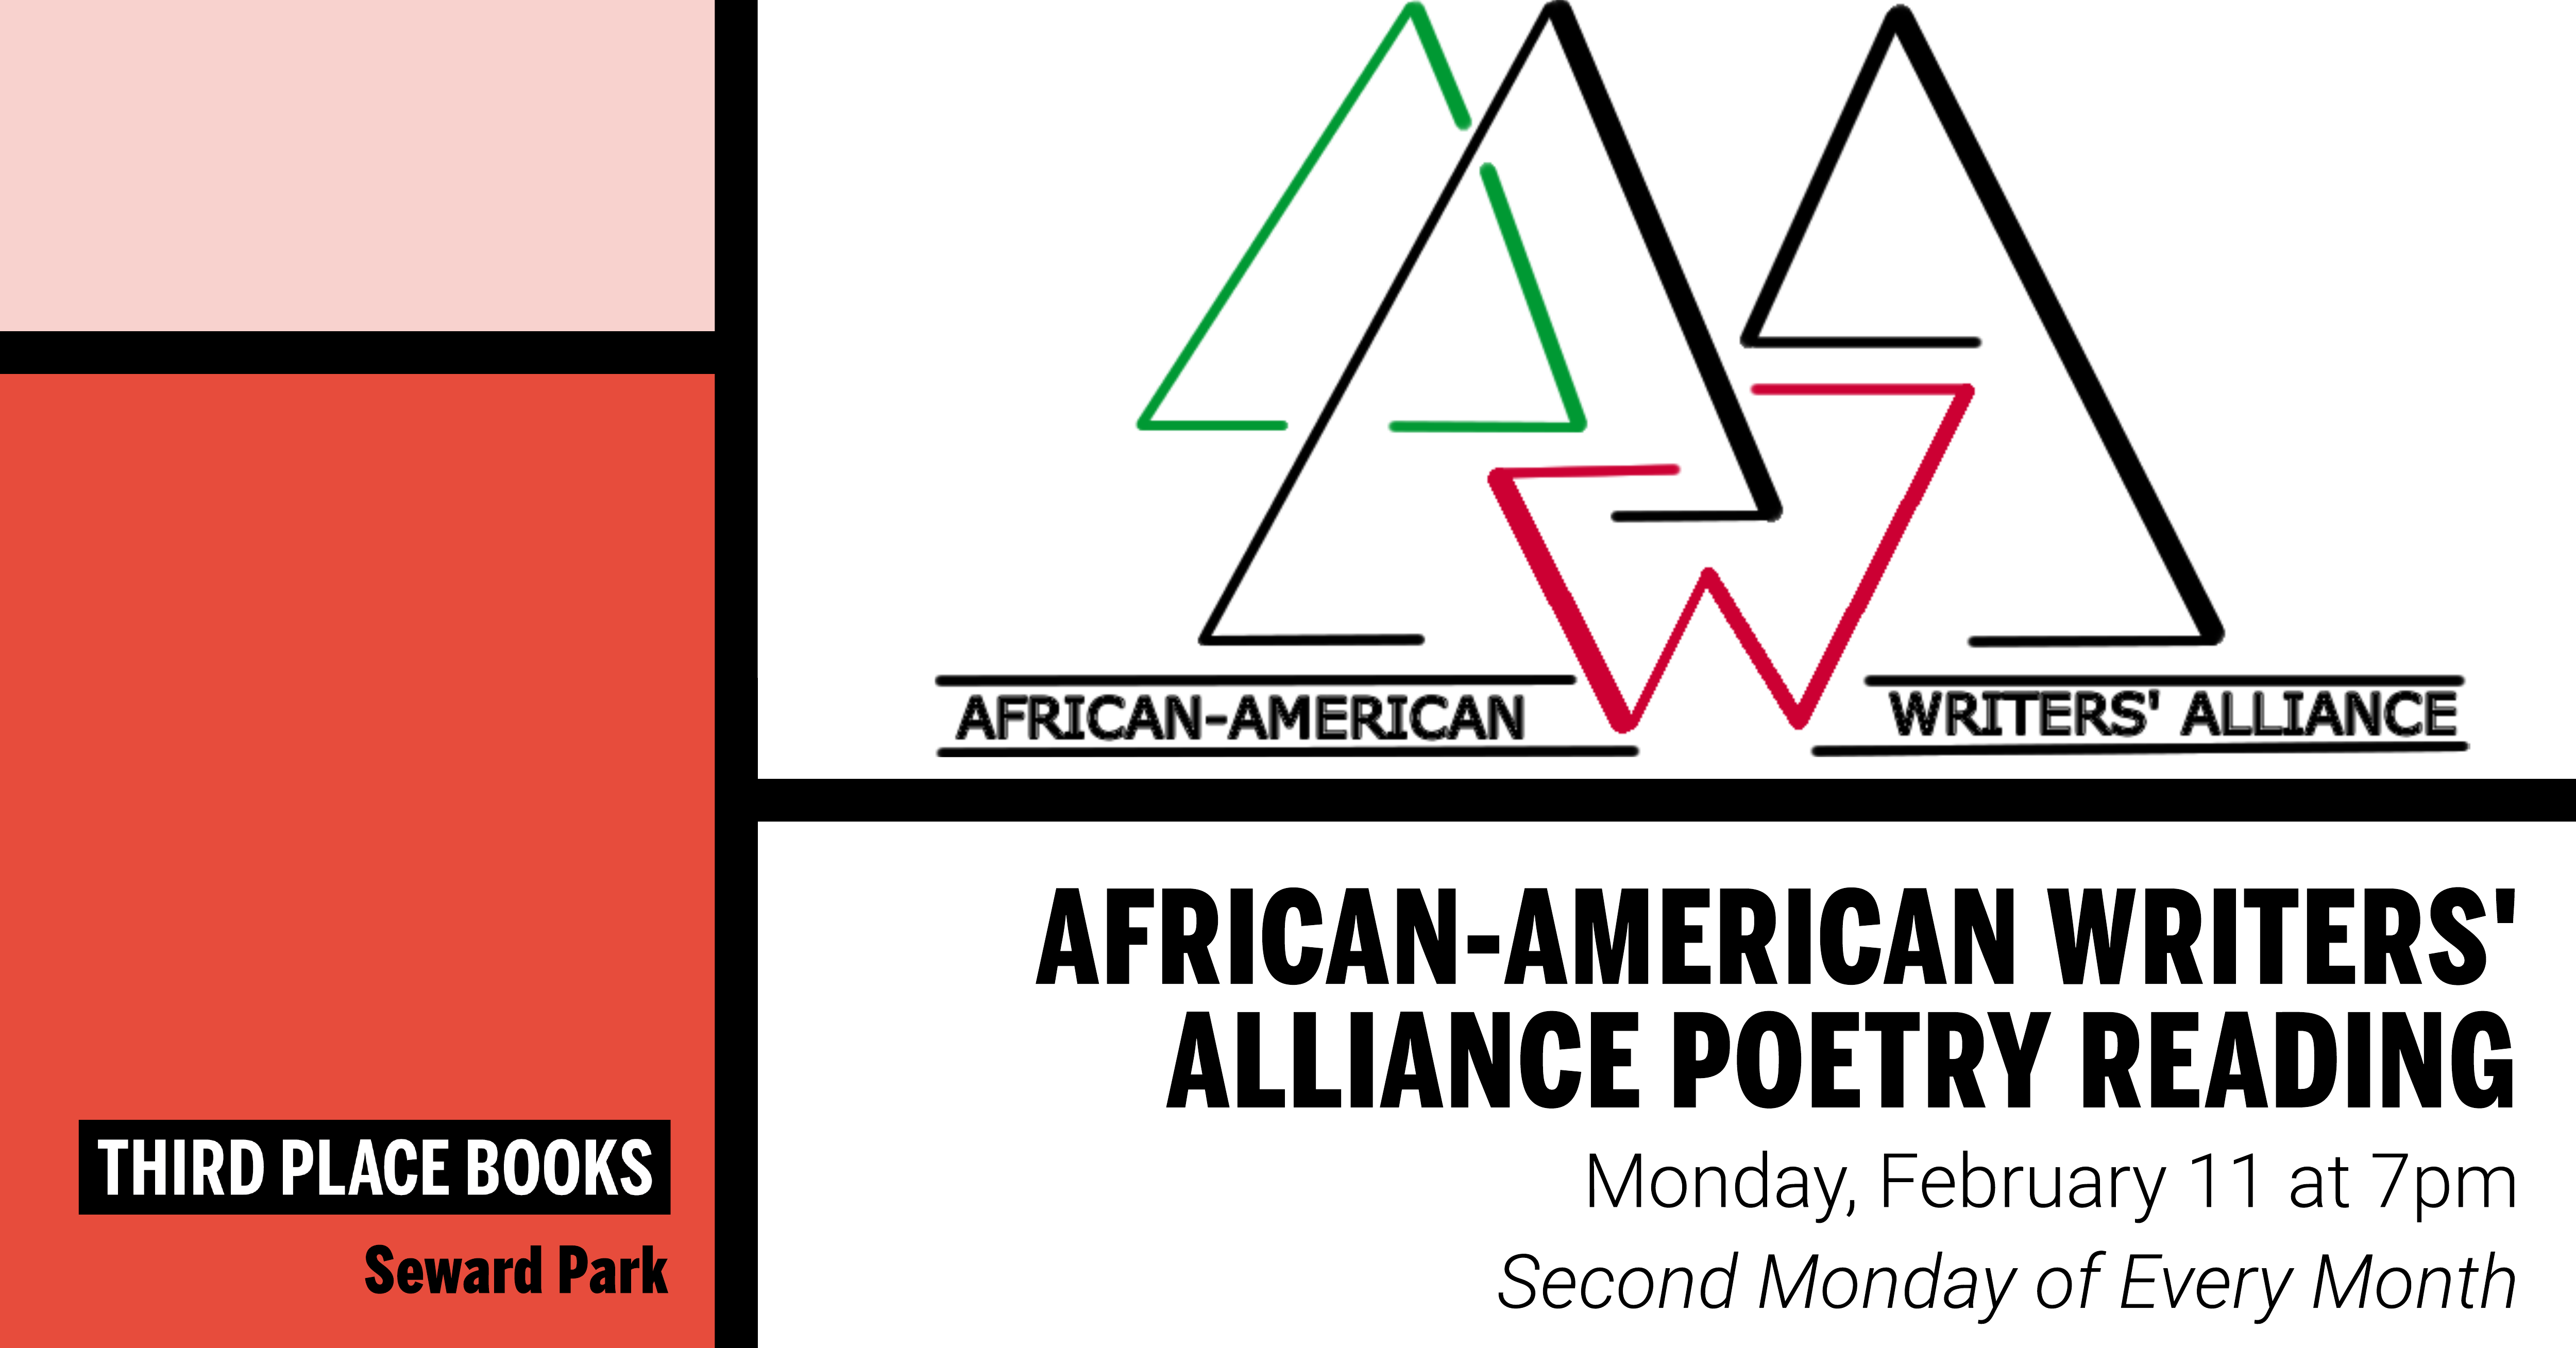 African-American Writers' Alliance Poetry Reading on Monday, February 11 at 7pm